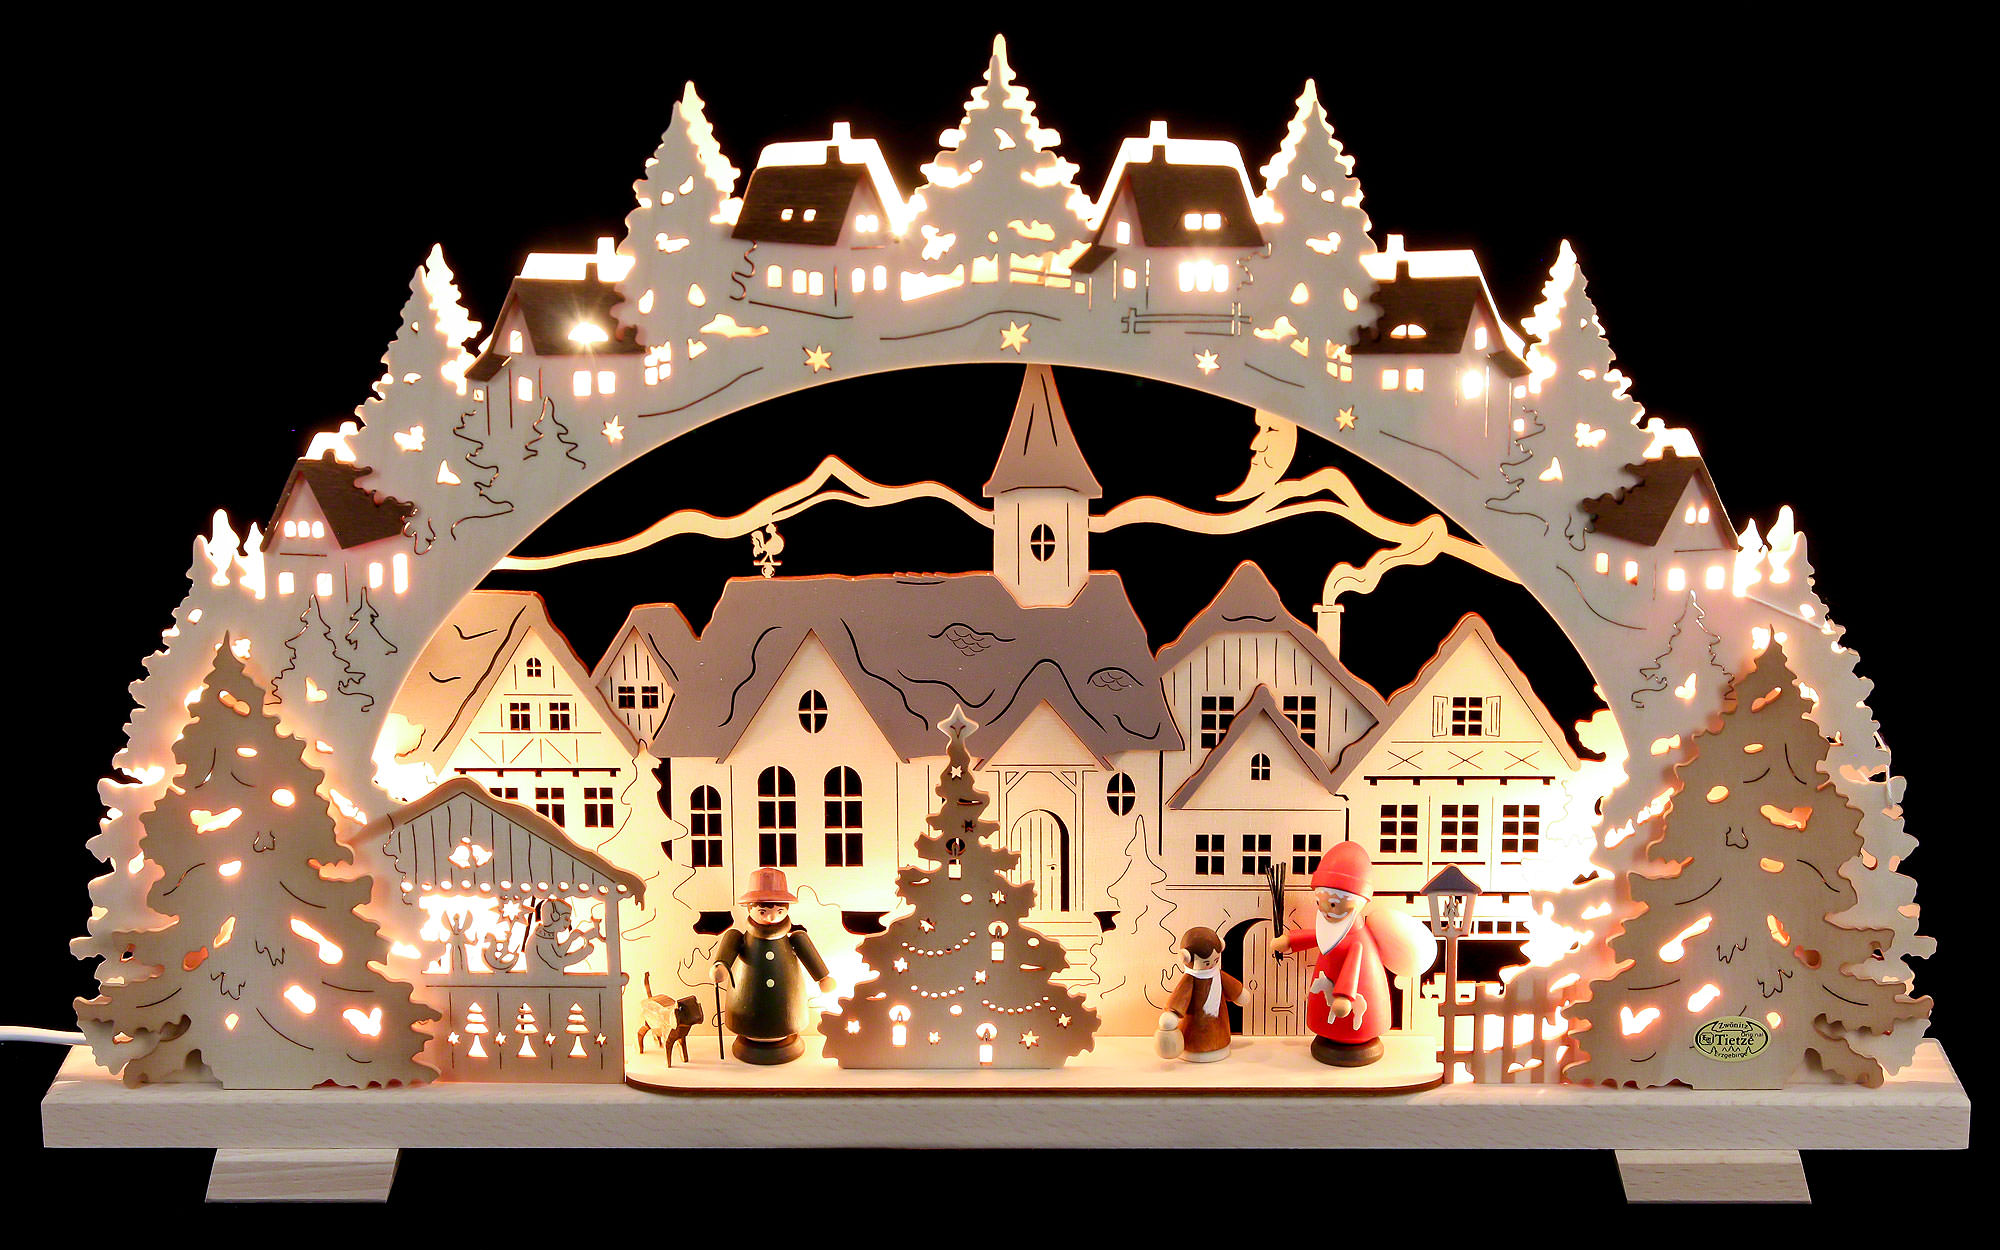 Candle arch christmas time exclusive 53x31x4 5cm 21x8x1 for Arch candle christmas decoration